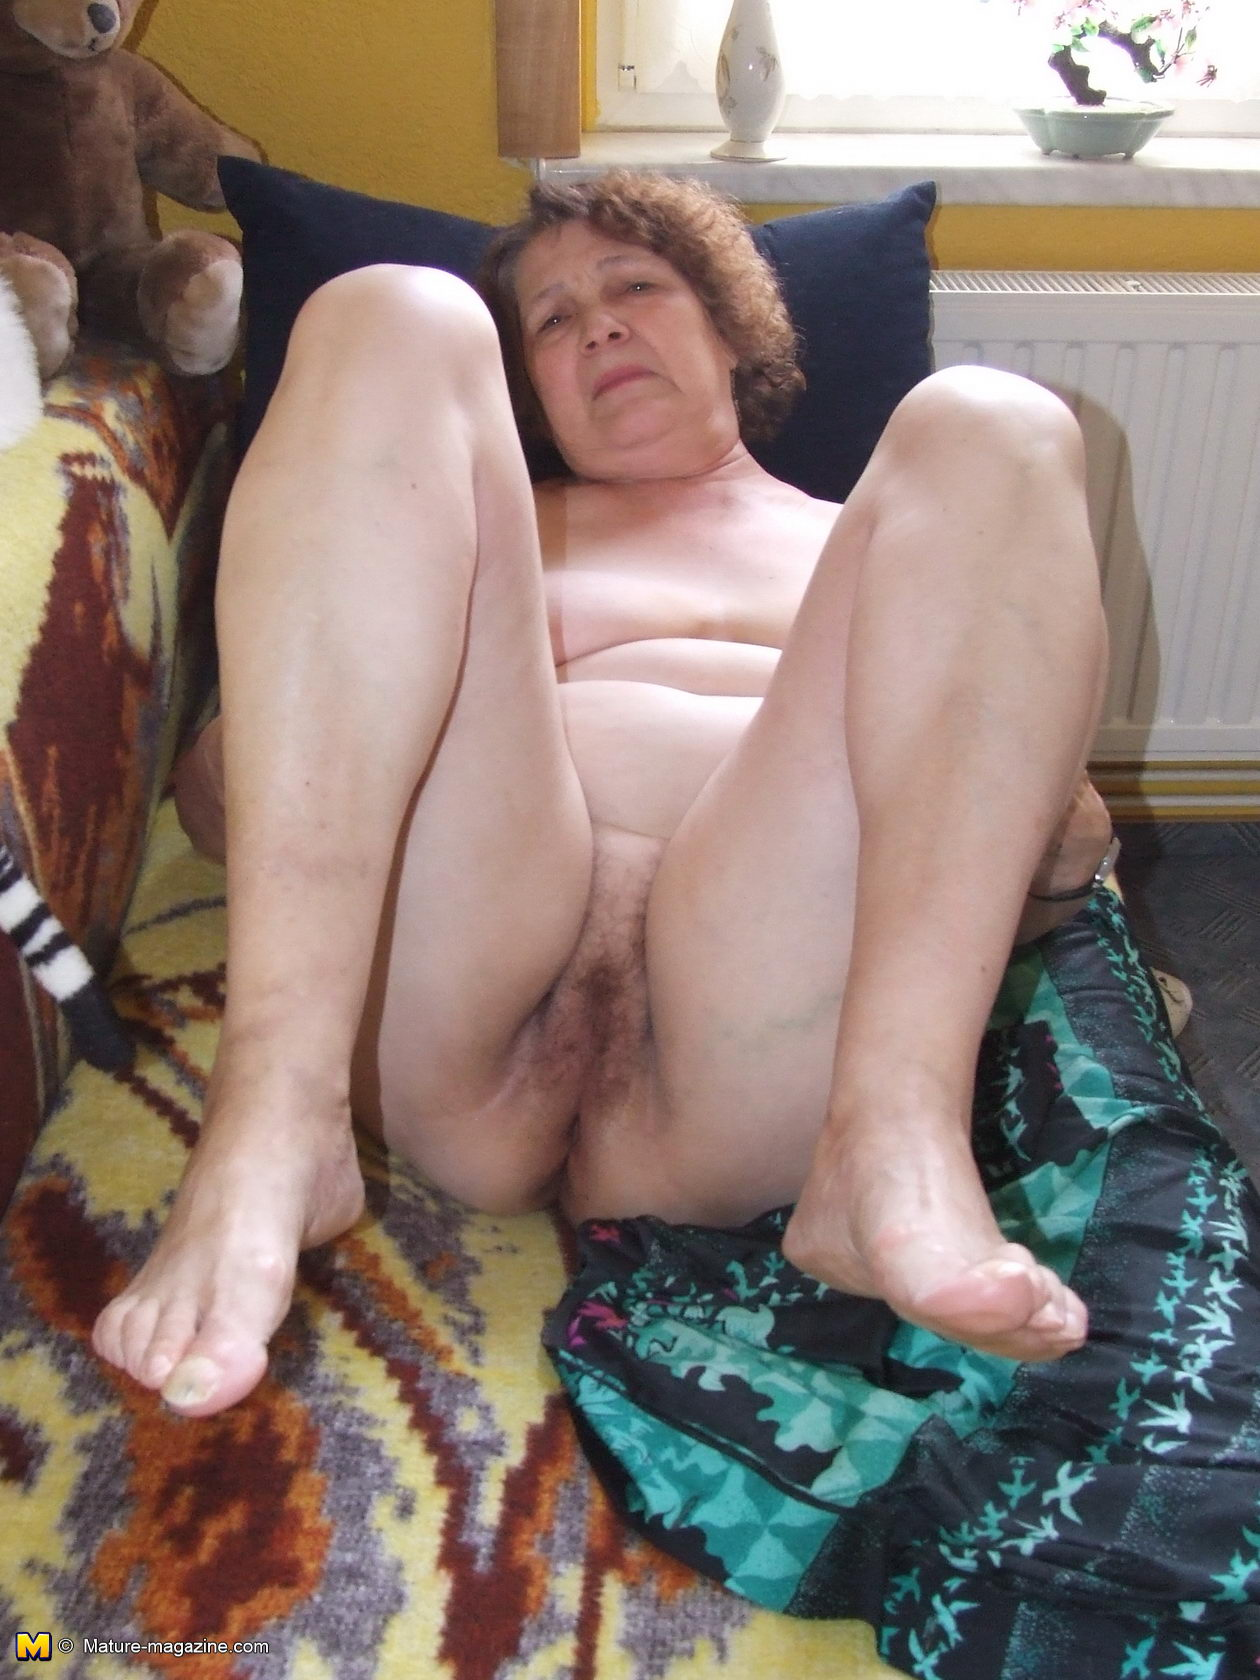 Hairy lindsay plays with her wet pussy hairs on floor 10